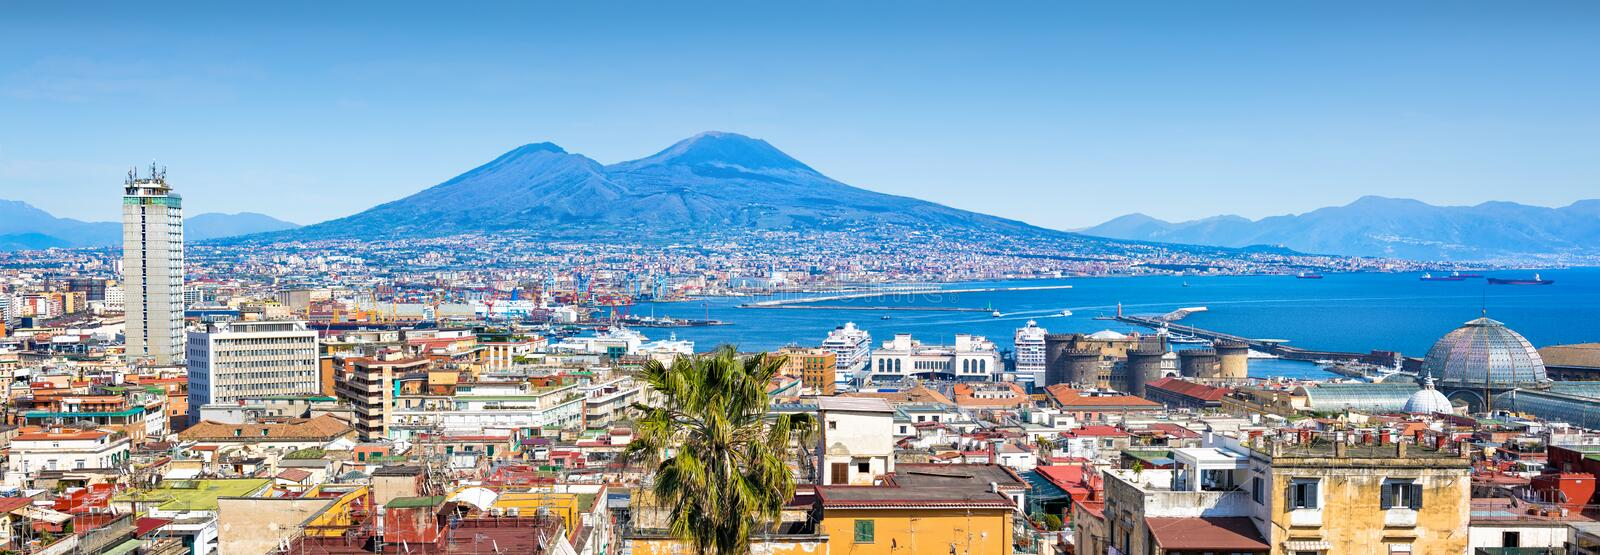 Panoramic view of Naples and Mount Vesuvius, Italy. Panoramic view of Naples, sea port in Gulf of Naples and Mount Vesuvius, Campania region, Italy stock photography